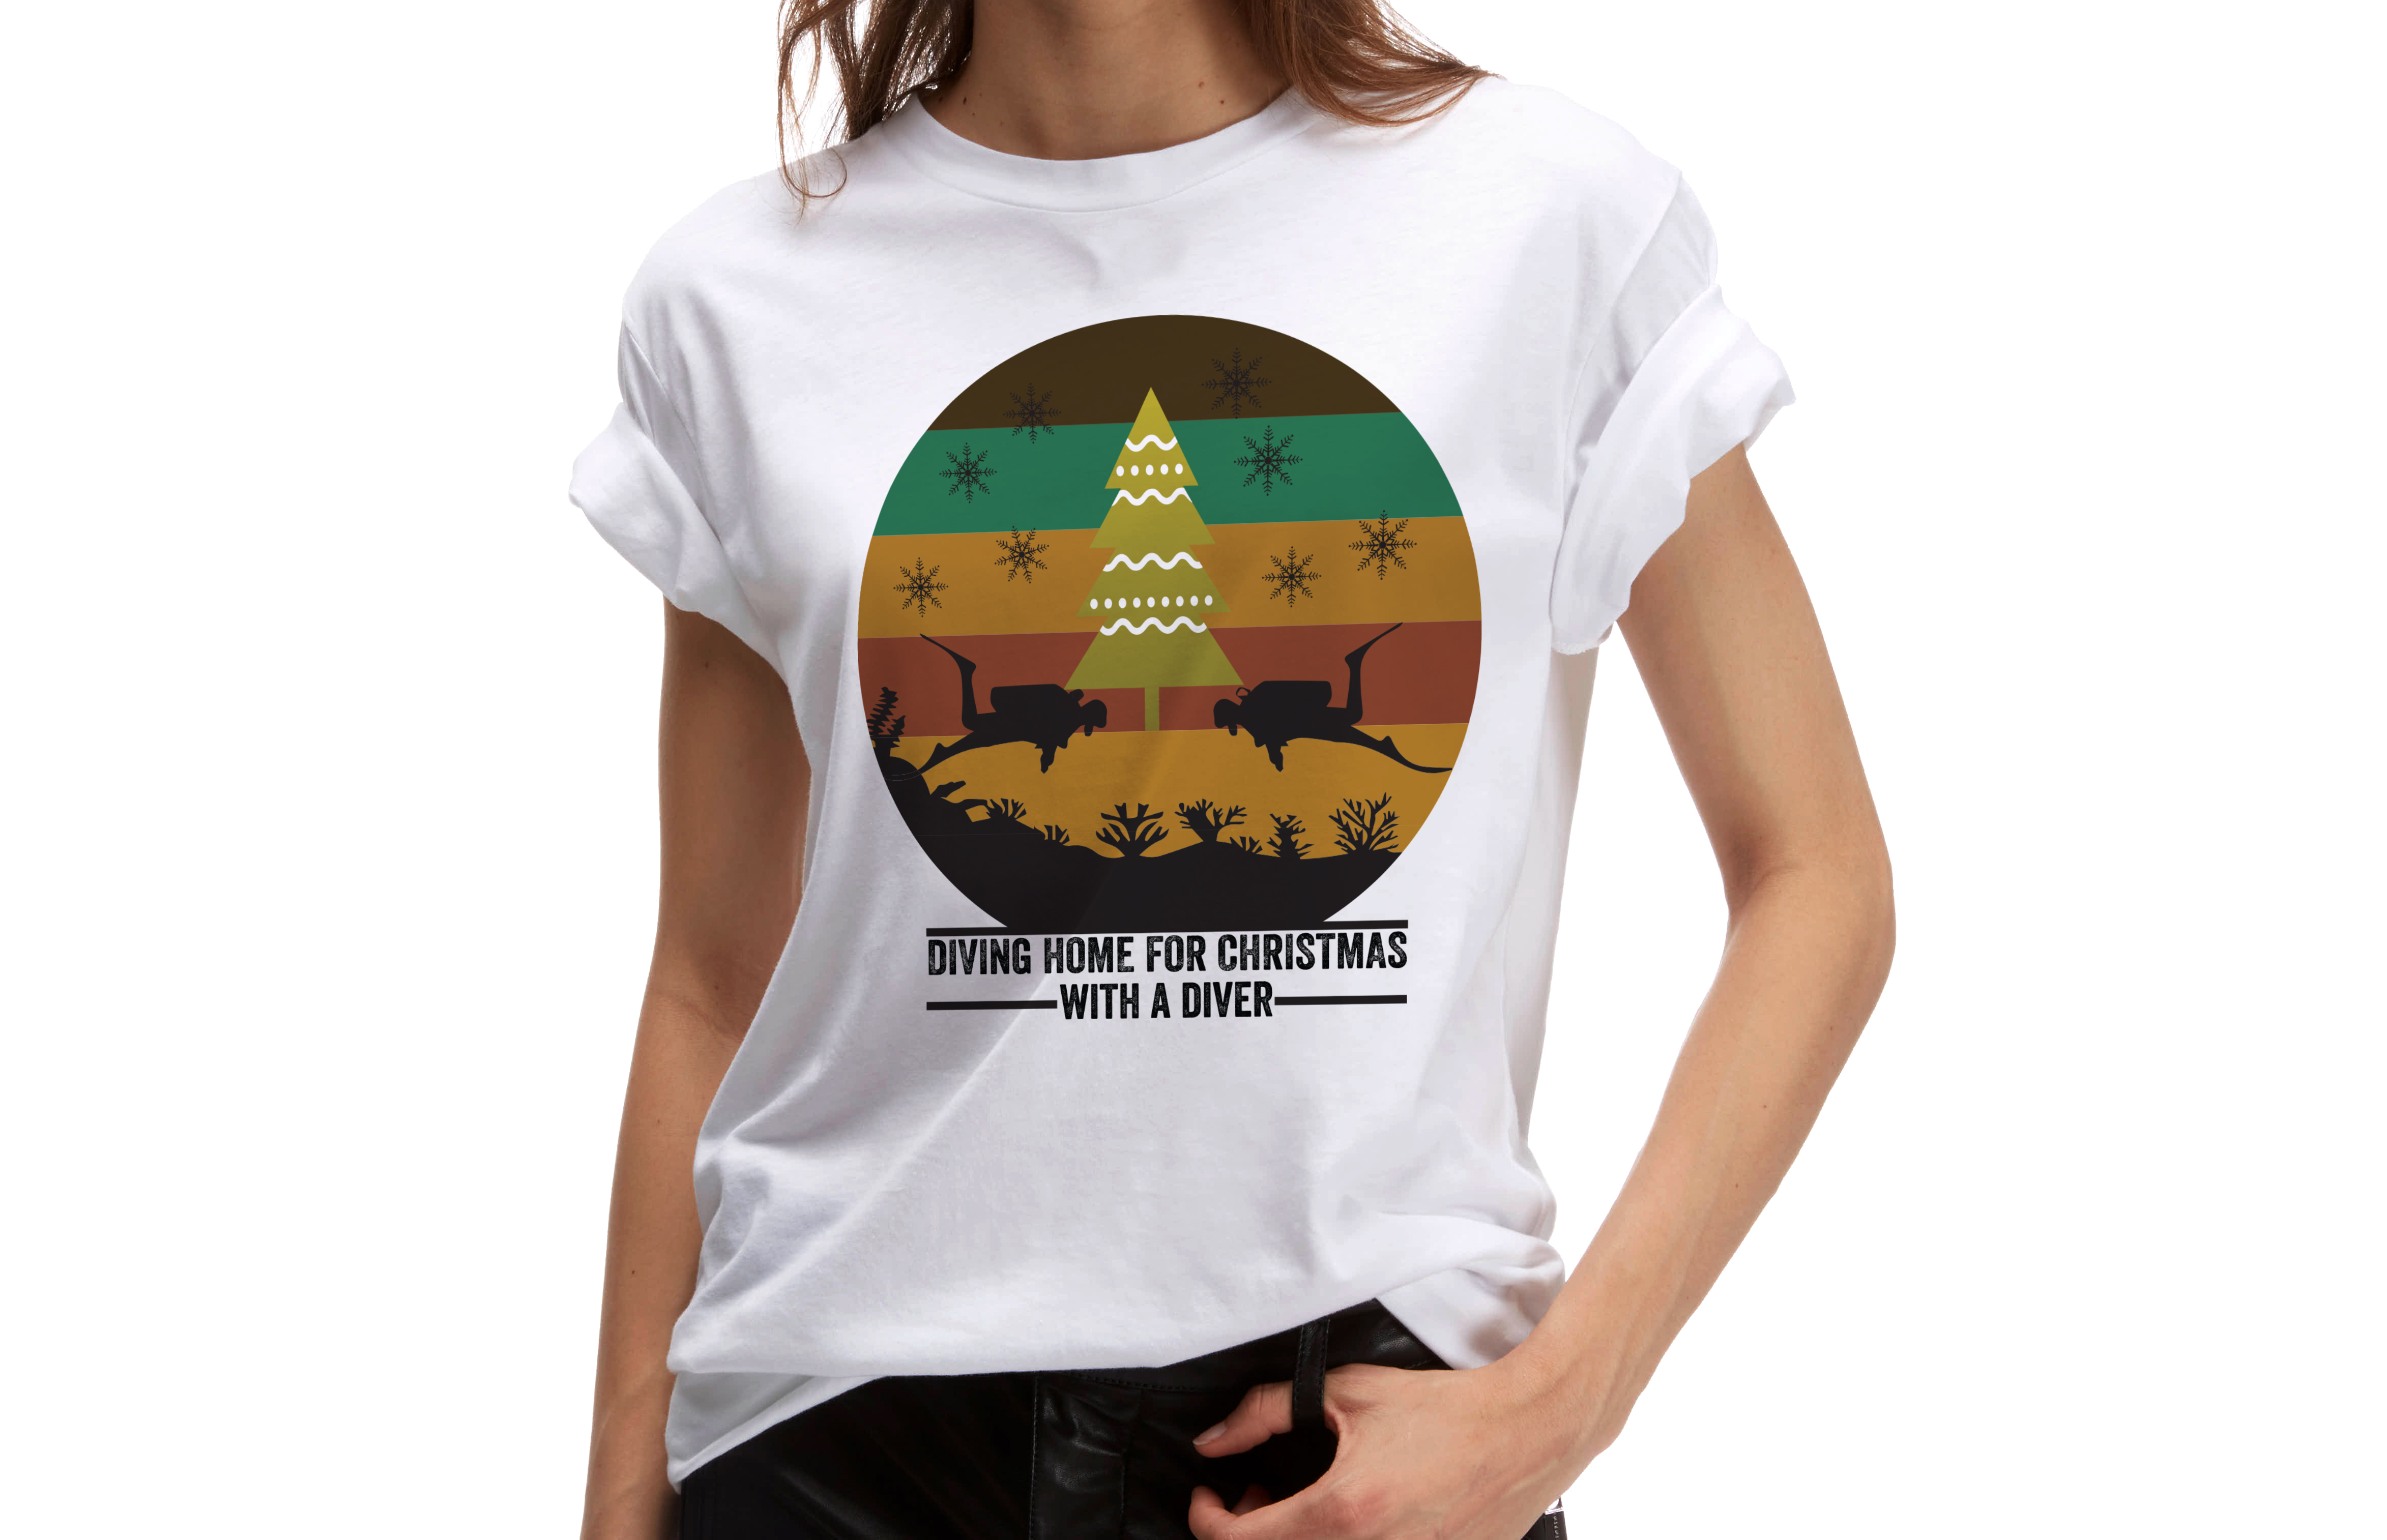 I will create any t-shirt design for your